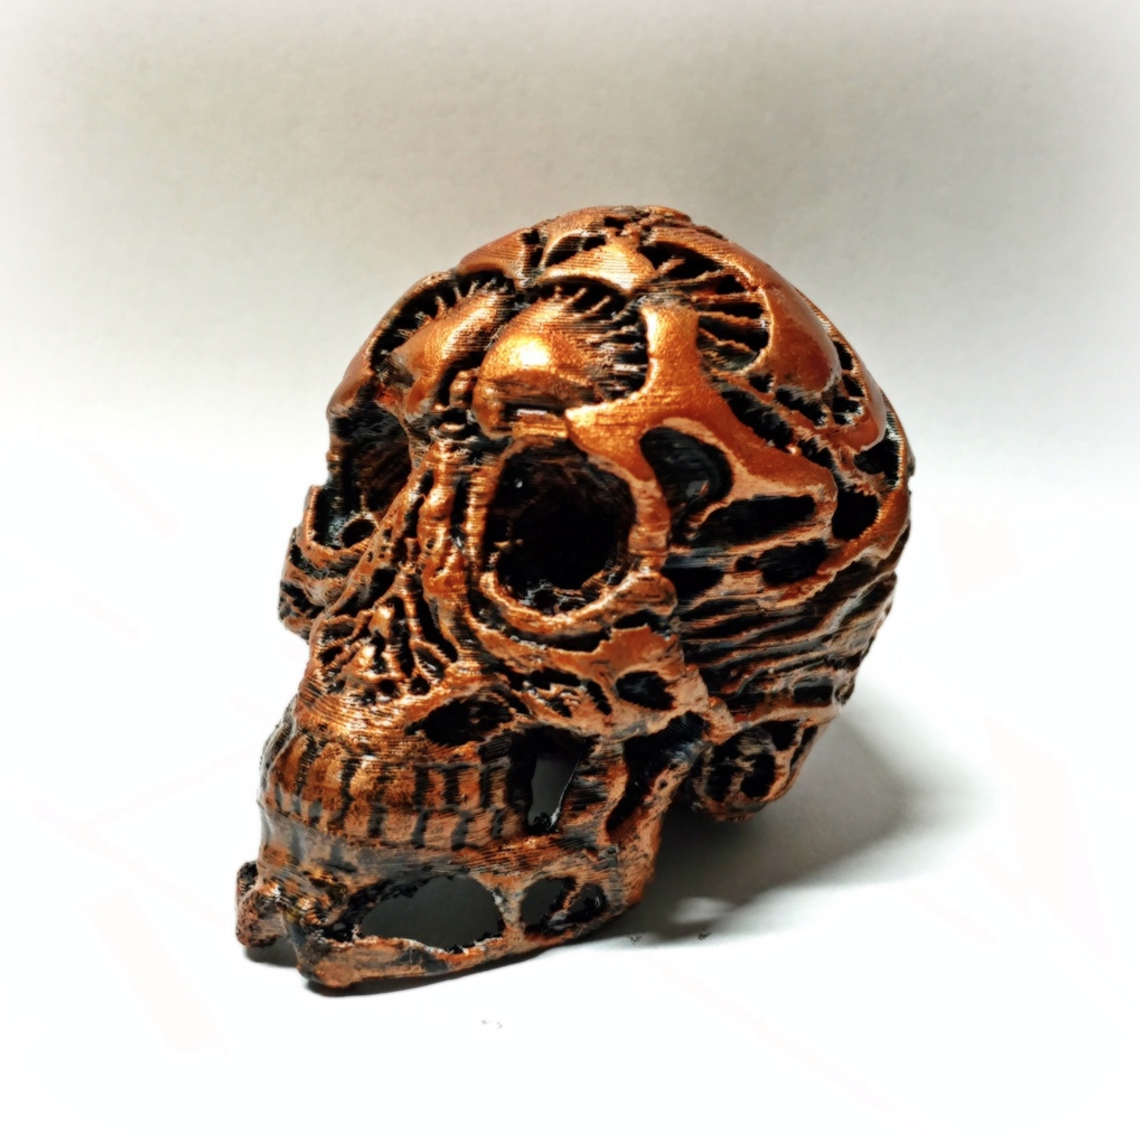 Capture d'écran 2016-12-13 à 15.25.19.png Download free STL file Hunter Skull HD (with supports) • 3D printable object, Geoffro